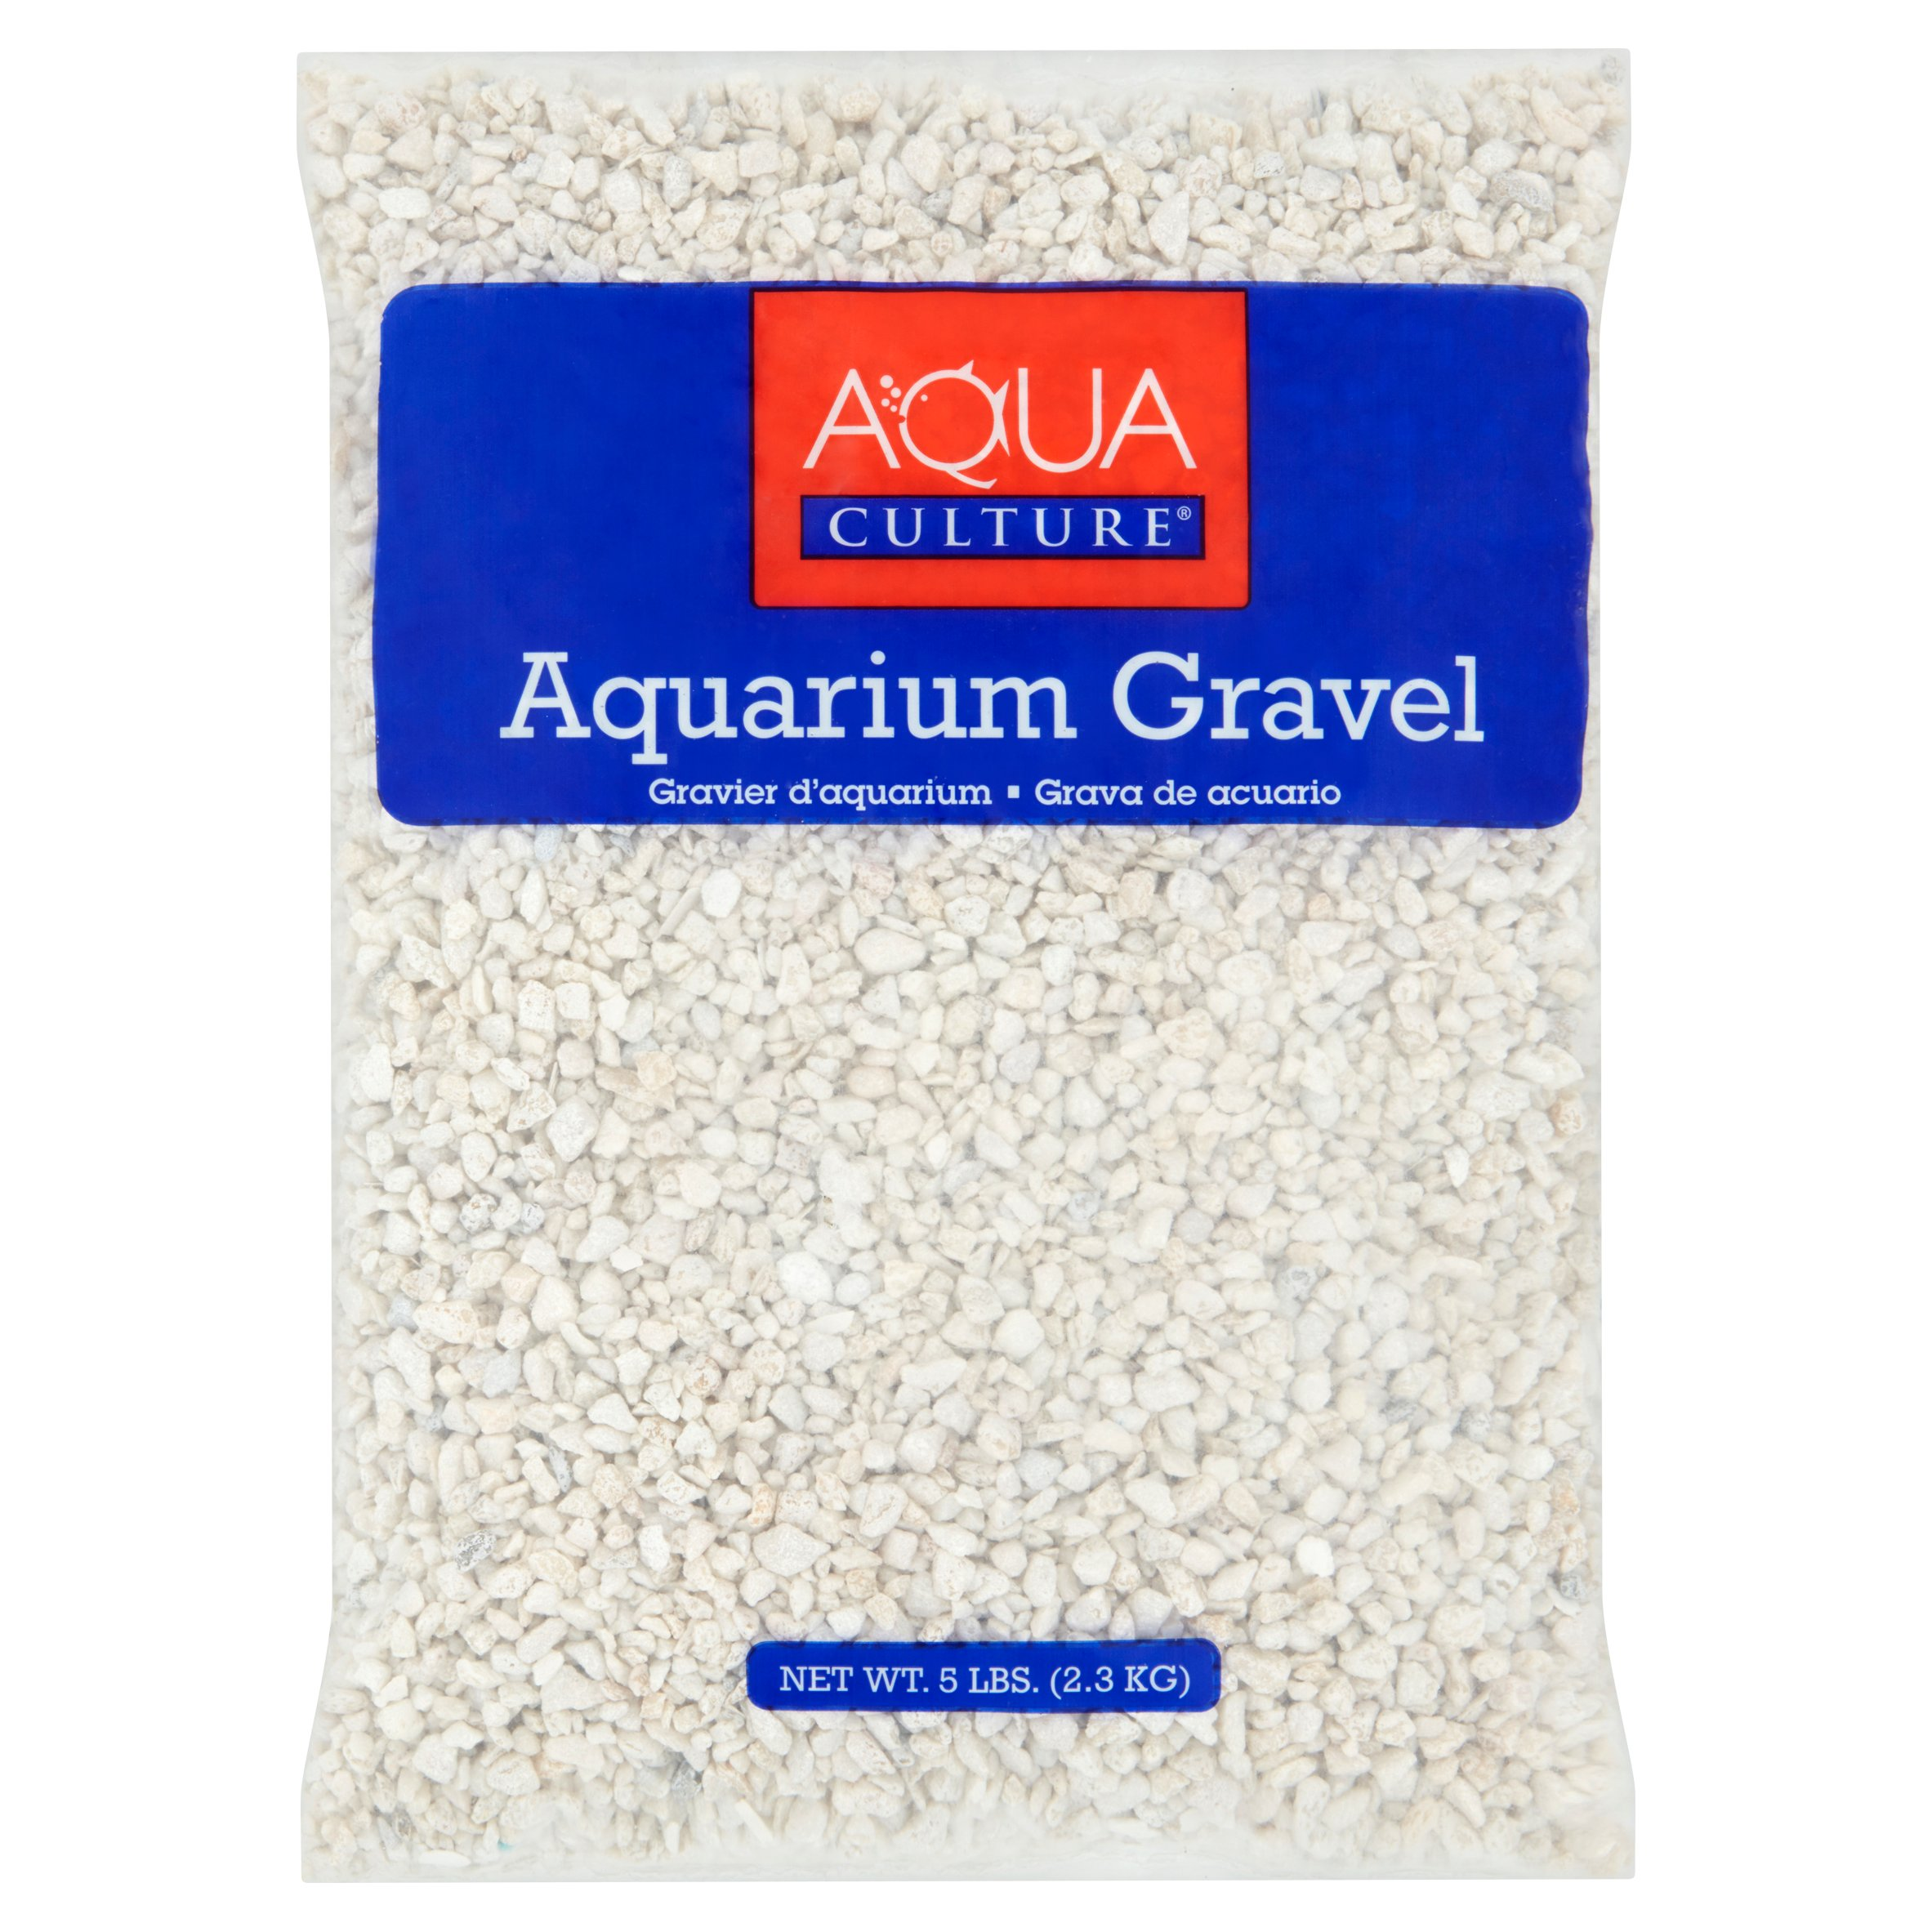 Aqua Culture Aquarium Gravel, White, 5 lbs - Walmart.com